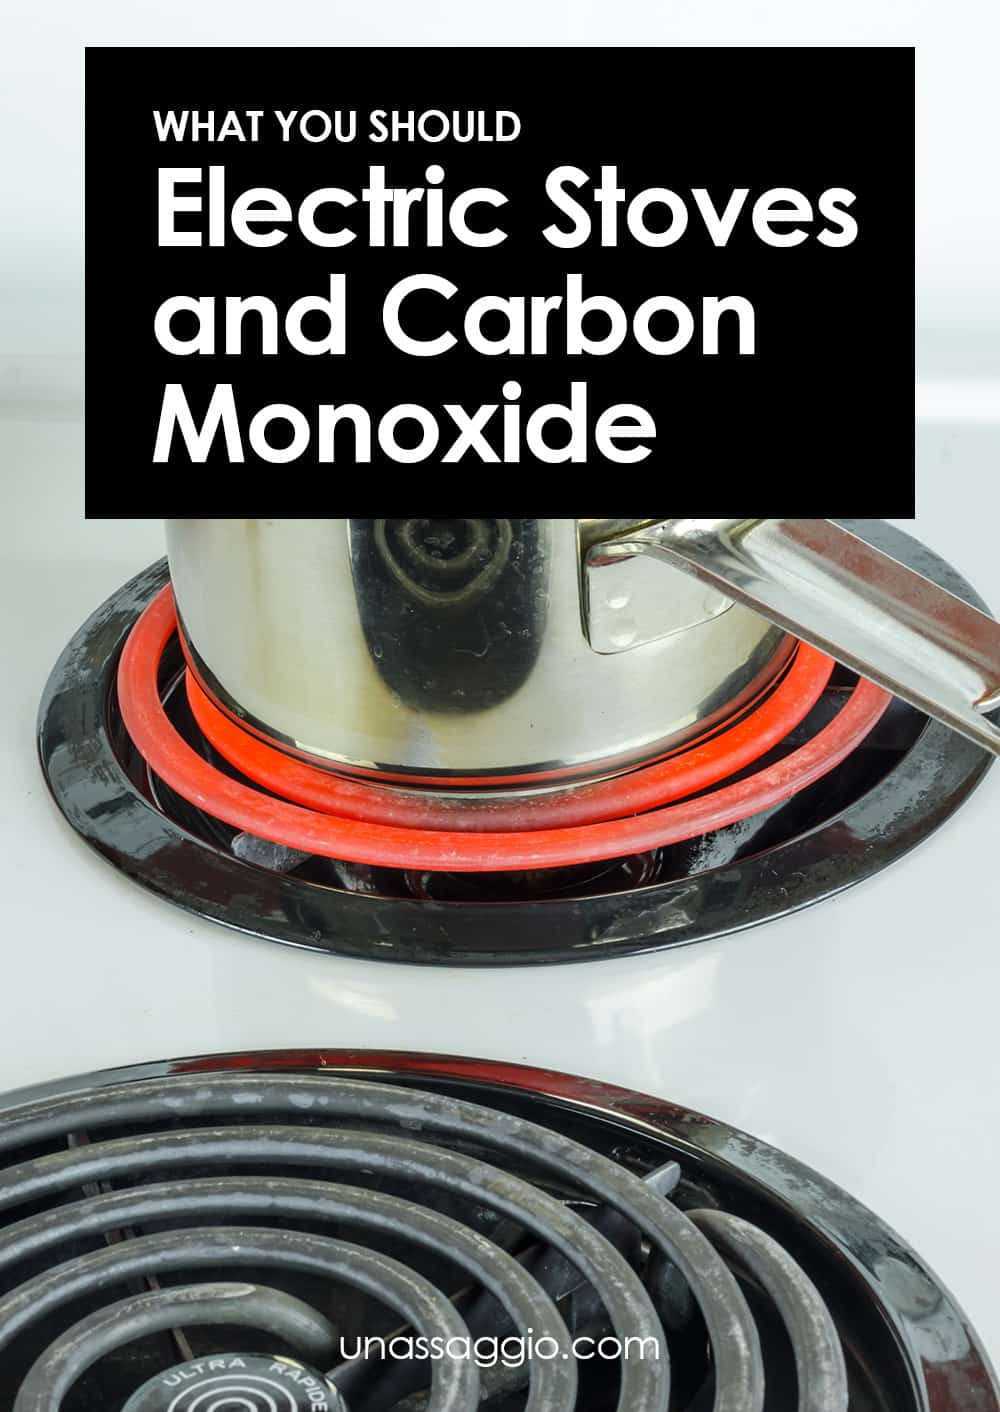 Electric Stoves And Carbon Monoxide: What You Should Know